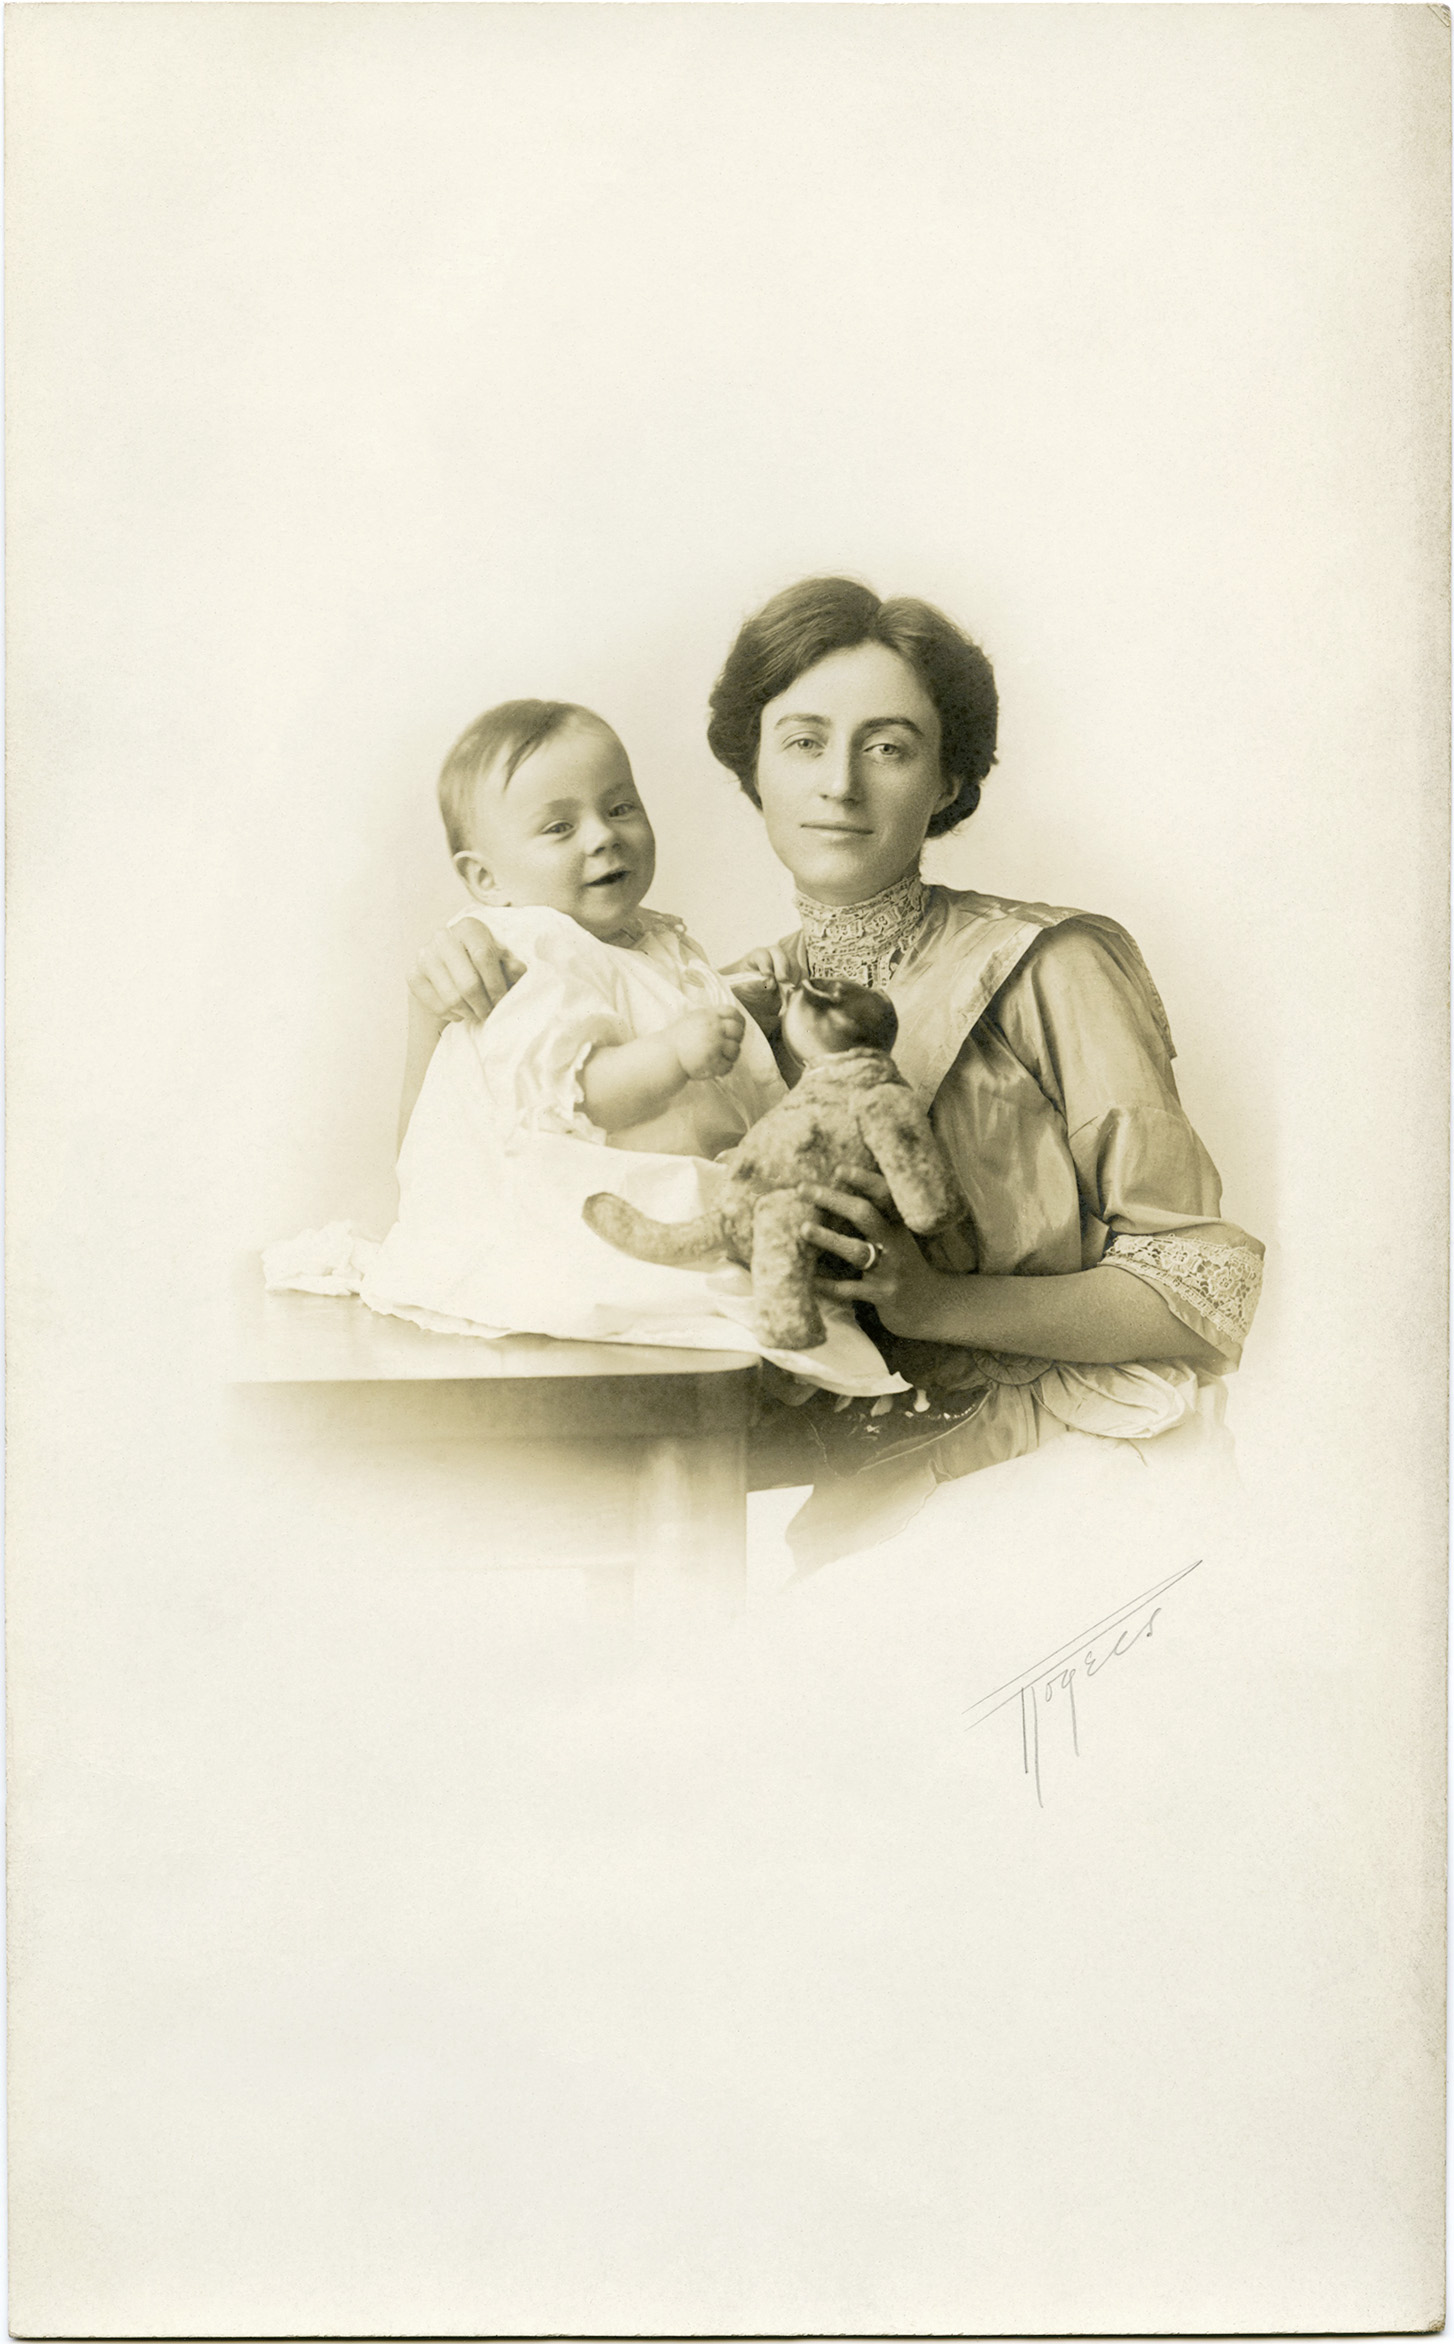 mother and baby vintage photograph